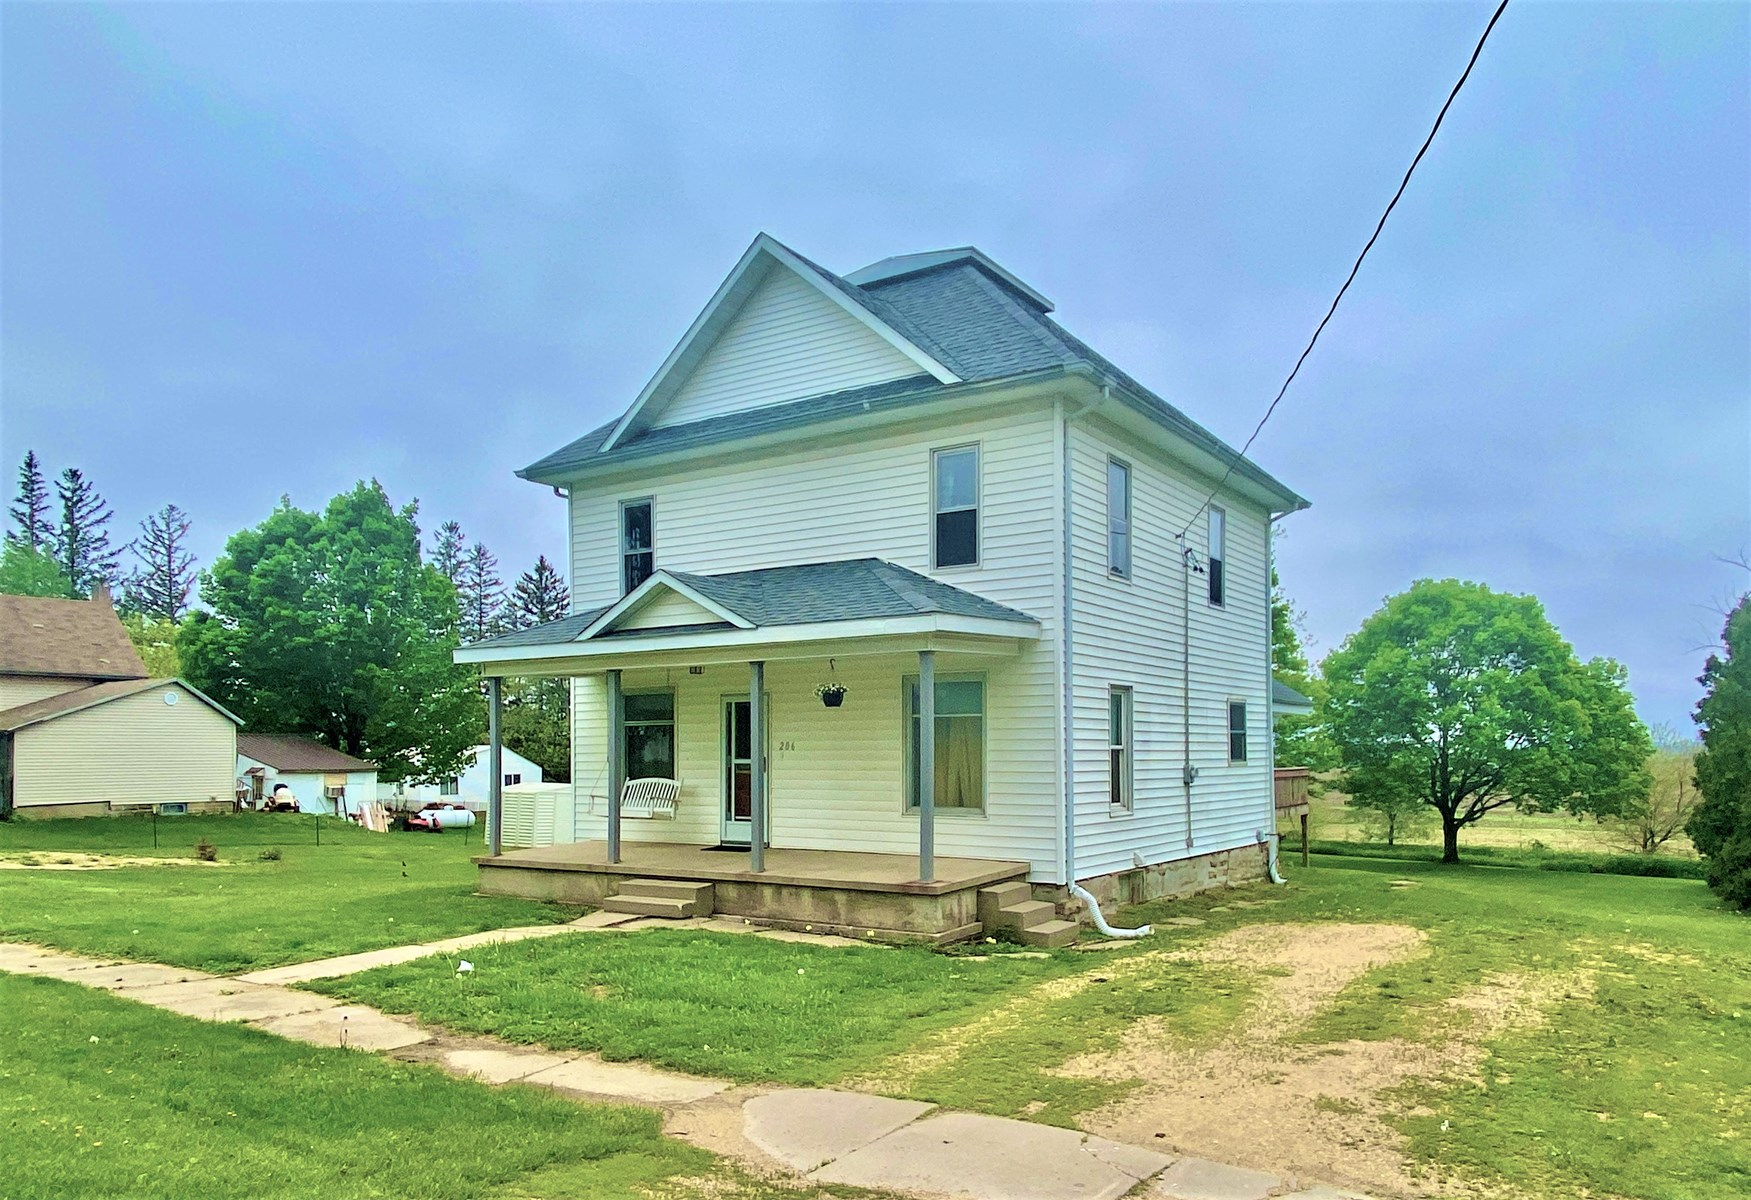 Small Town Iowa Home for Sale